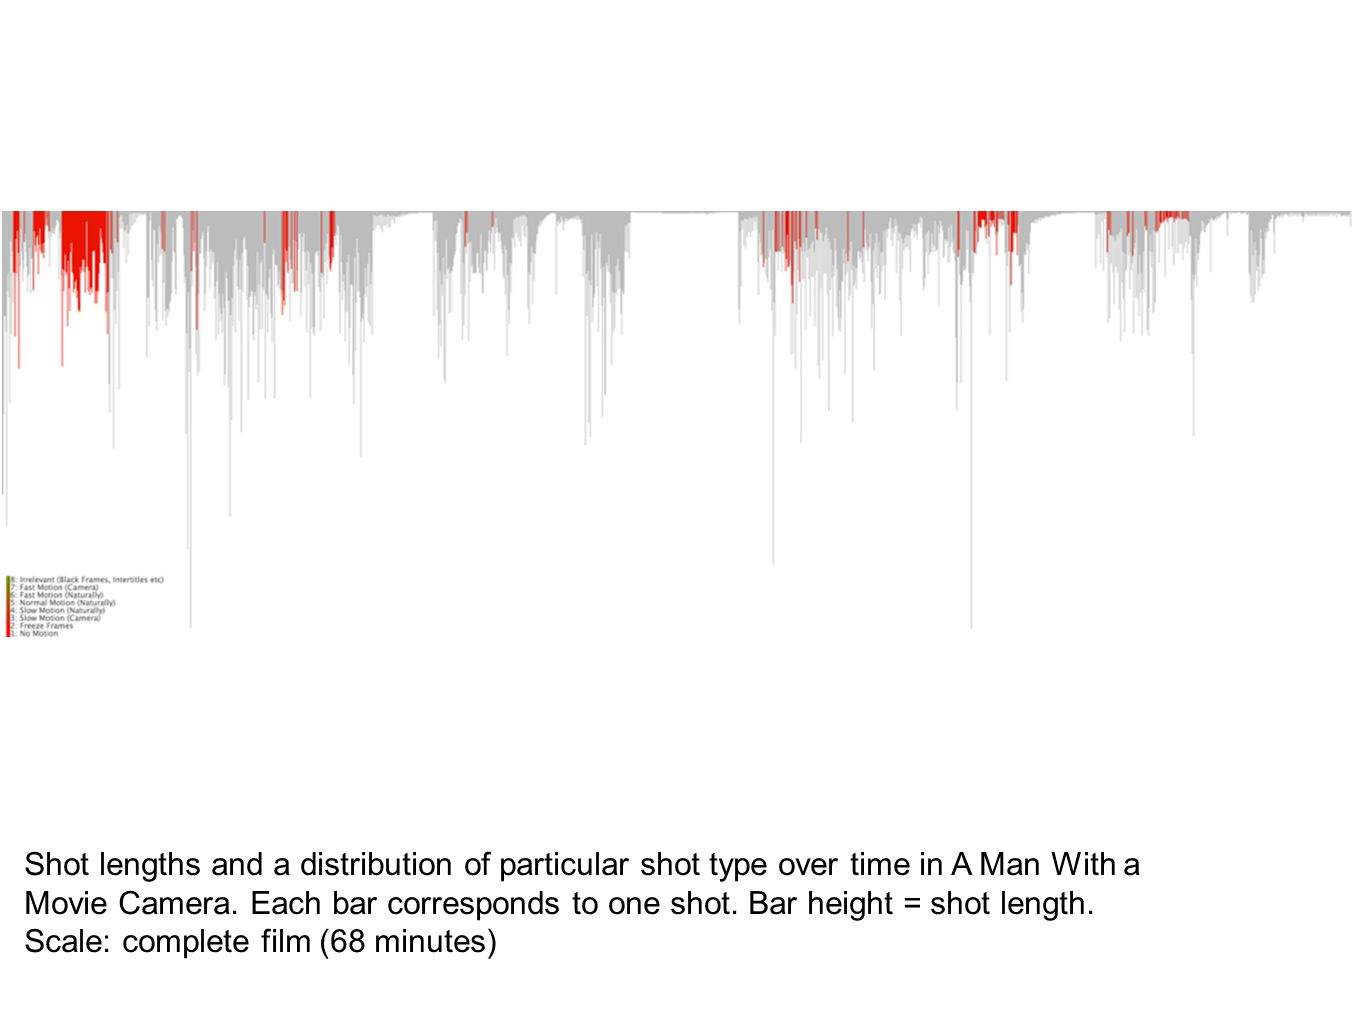 Shot lengths and a distribution of particular shot type over time in A Man With a Movie Camera.